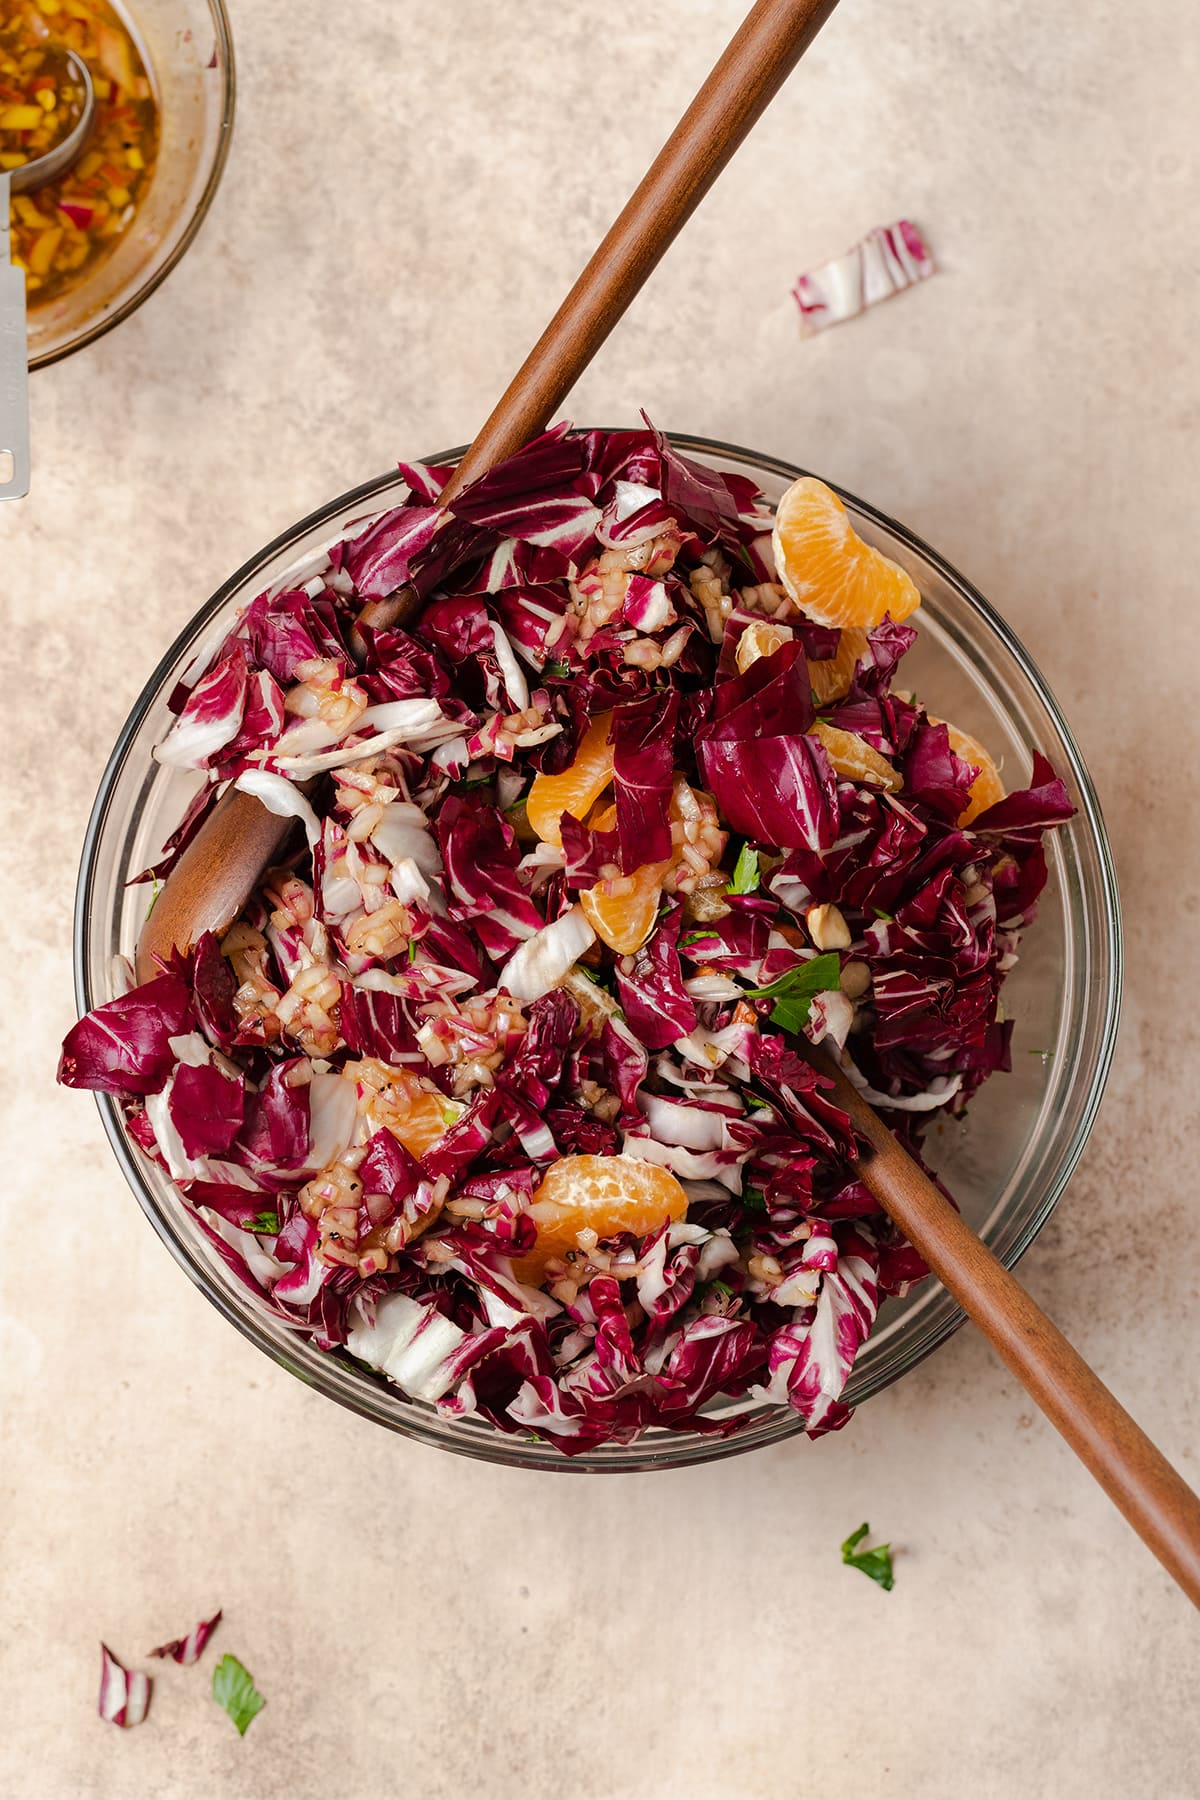 Radicchio Clementine Salad shown in a glass bowl with wooden salad spoons inserted in the bowl.